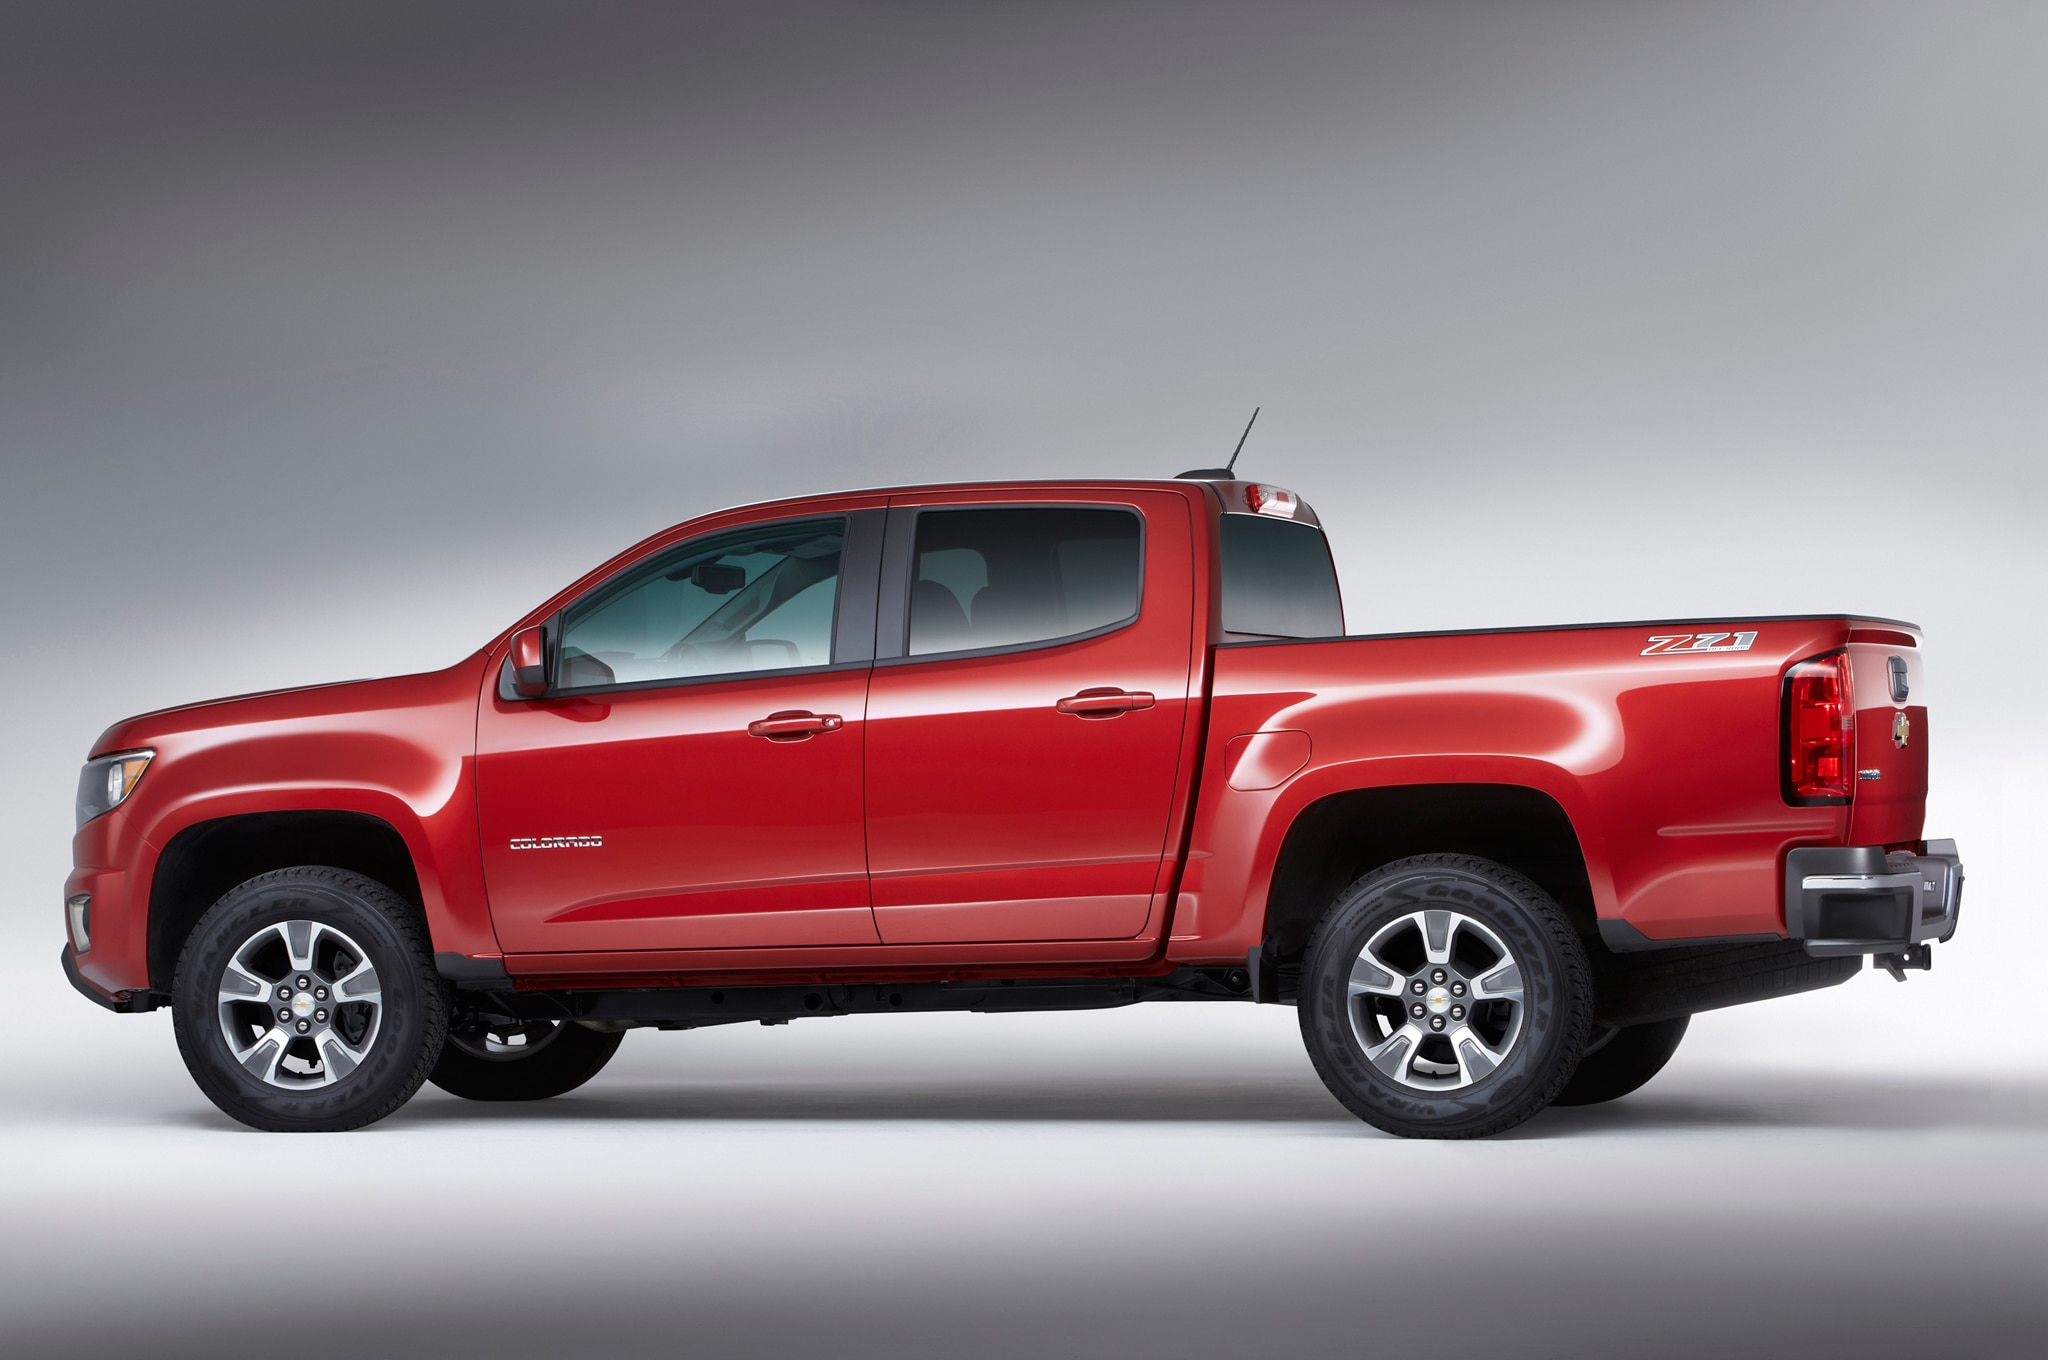 2015 Chevrolet Colorado rear three quarters 2015 chevrolet colorado starts at $20,995, gmc canyon at $21,880 2017 Chevy Colorado GMC Canyon at honlapkeszites.co